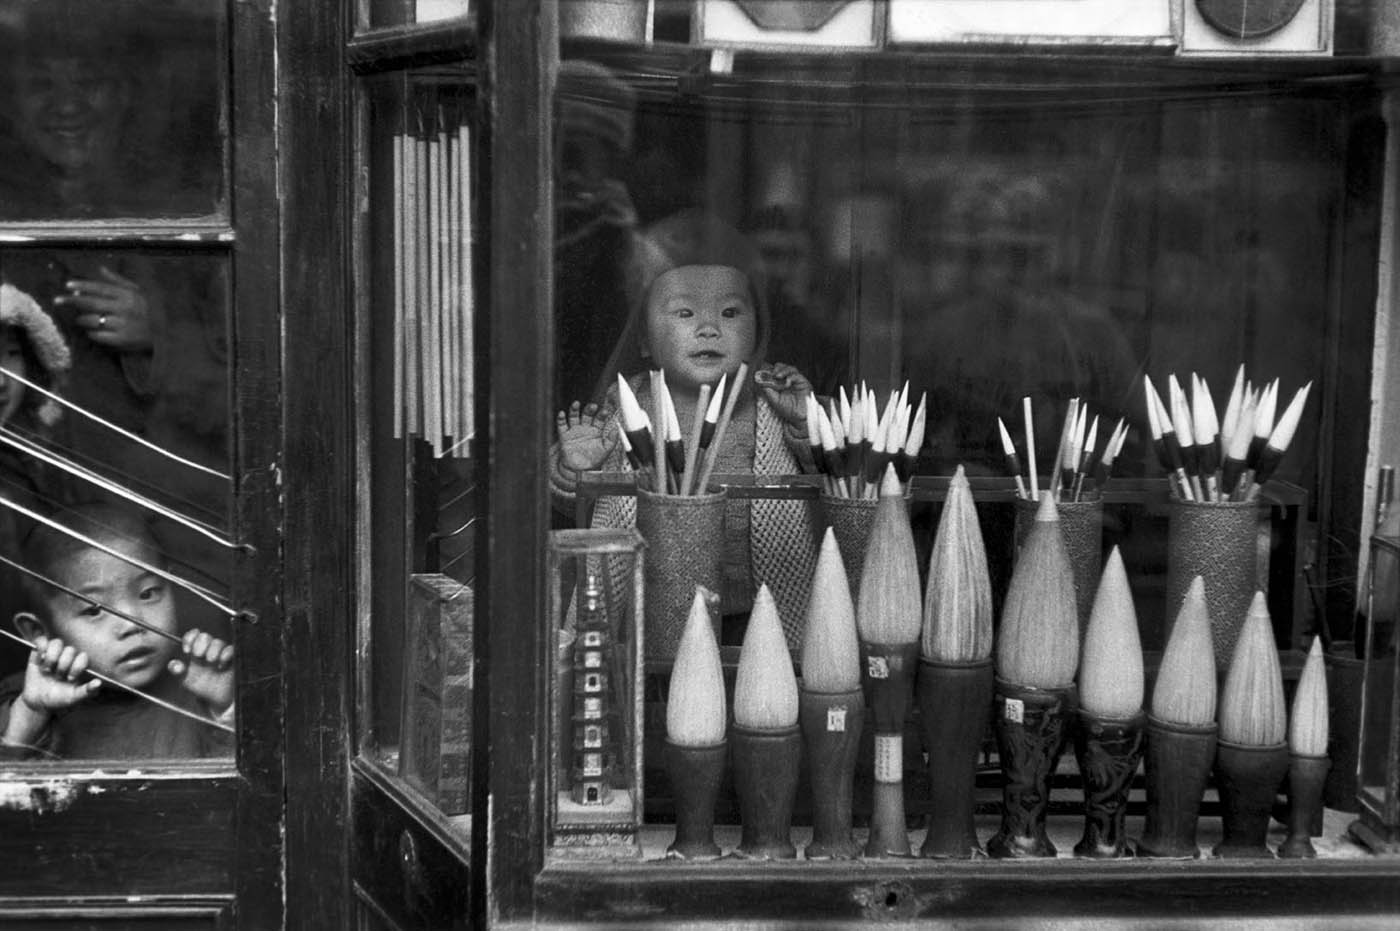 The window display of a brush merchant in the antique dealers' street, Beijing, December 1948. © Fondation Henri Cartier-Bresson / Magnum Photos